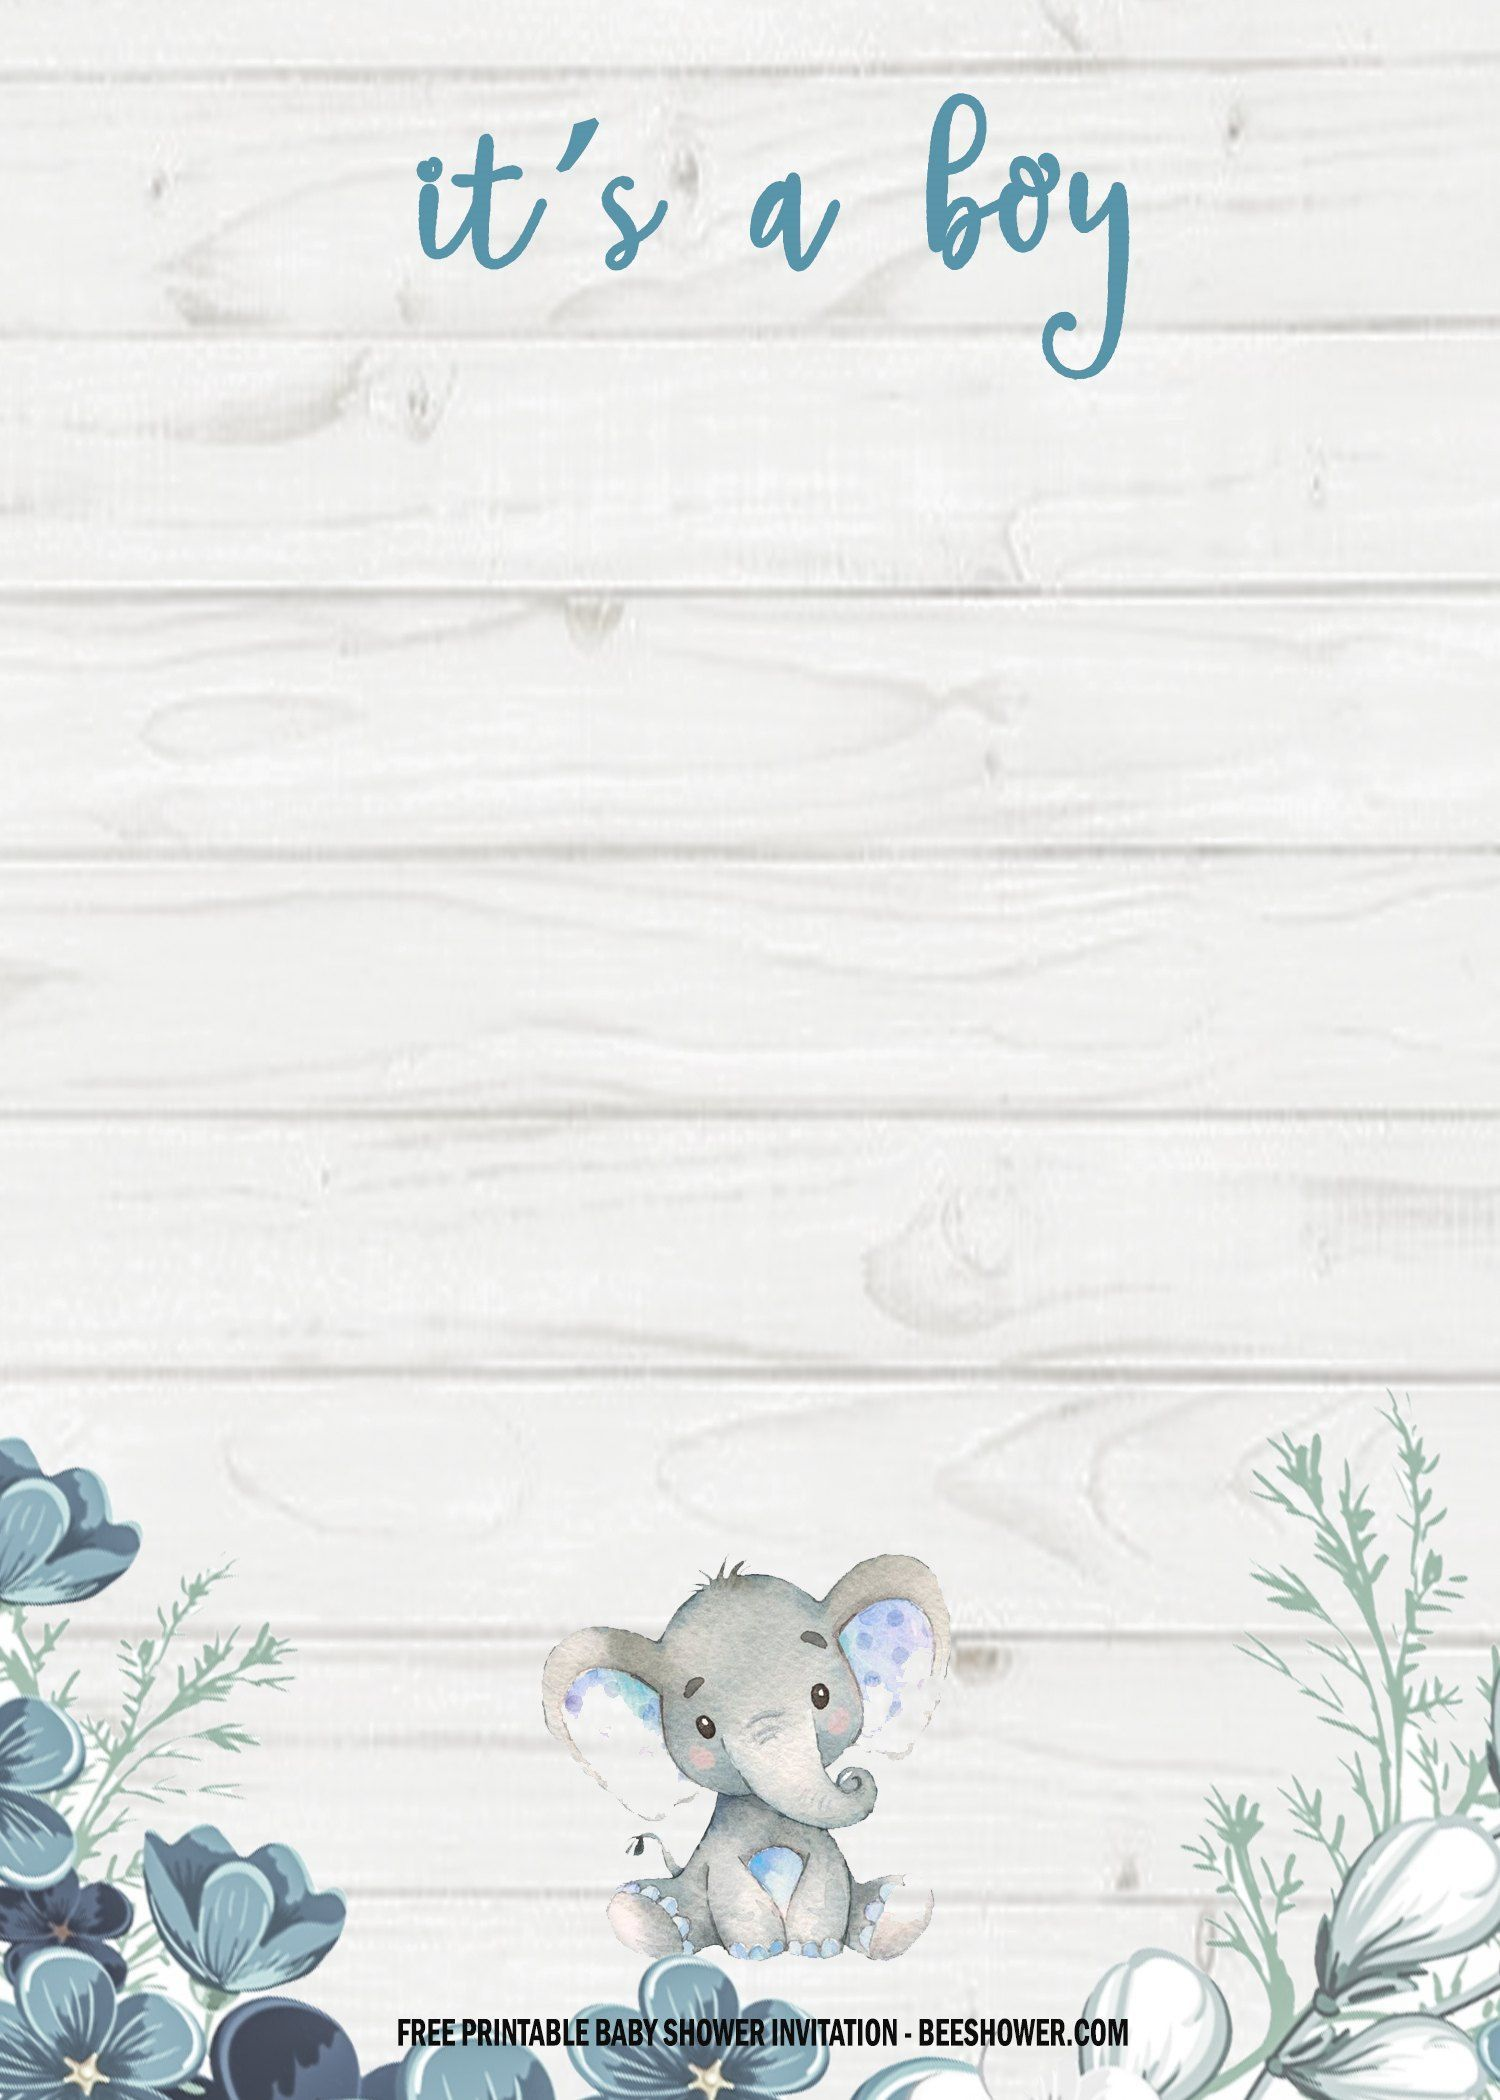 000 Unique Baby Shower Card Design Free Photo  Template Microsoft Word Boy DownloadFull